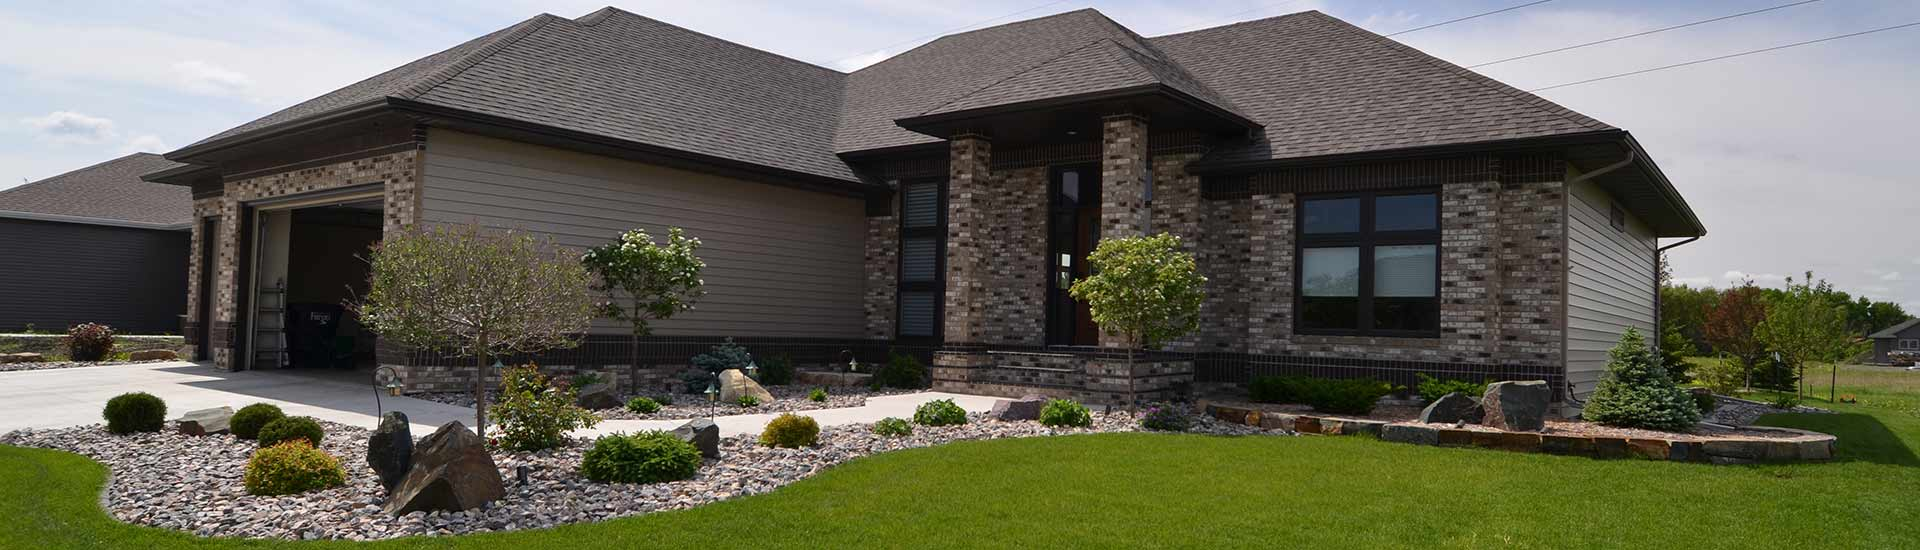 Retaining-Walls-Borders-Fargo-ND-Landscaping1-1